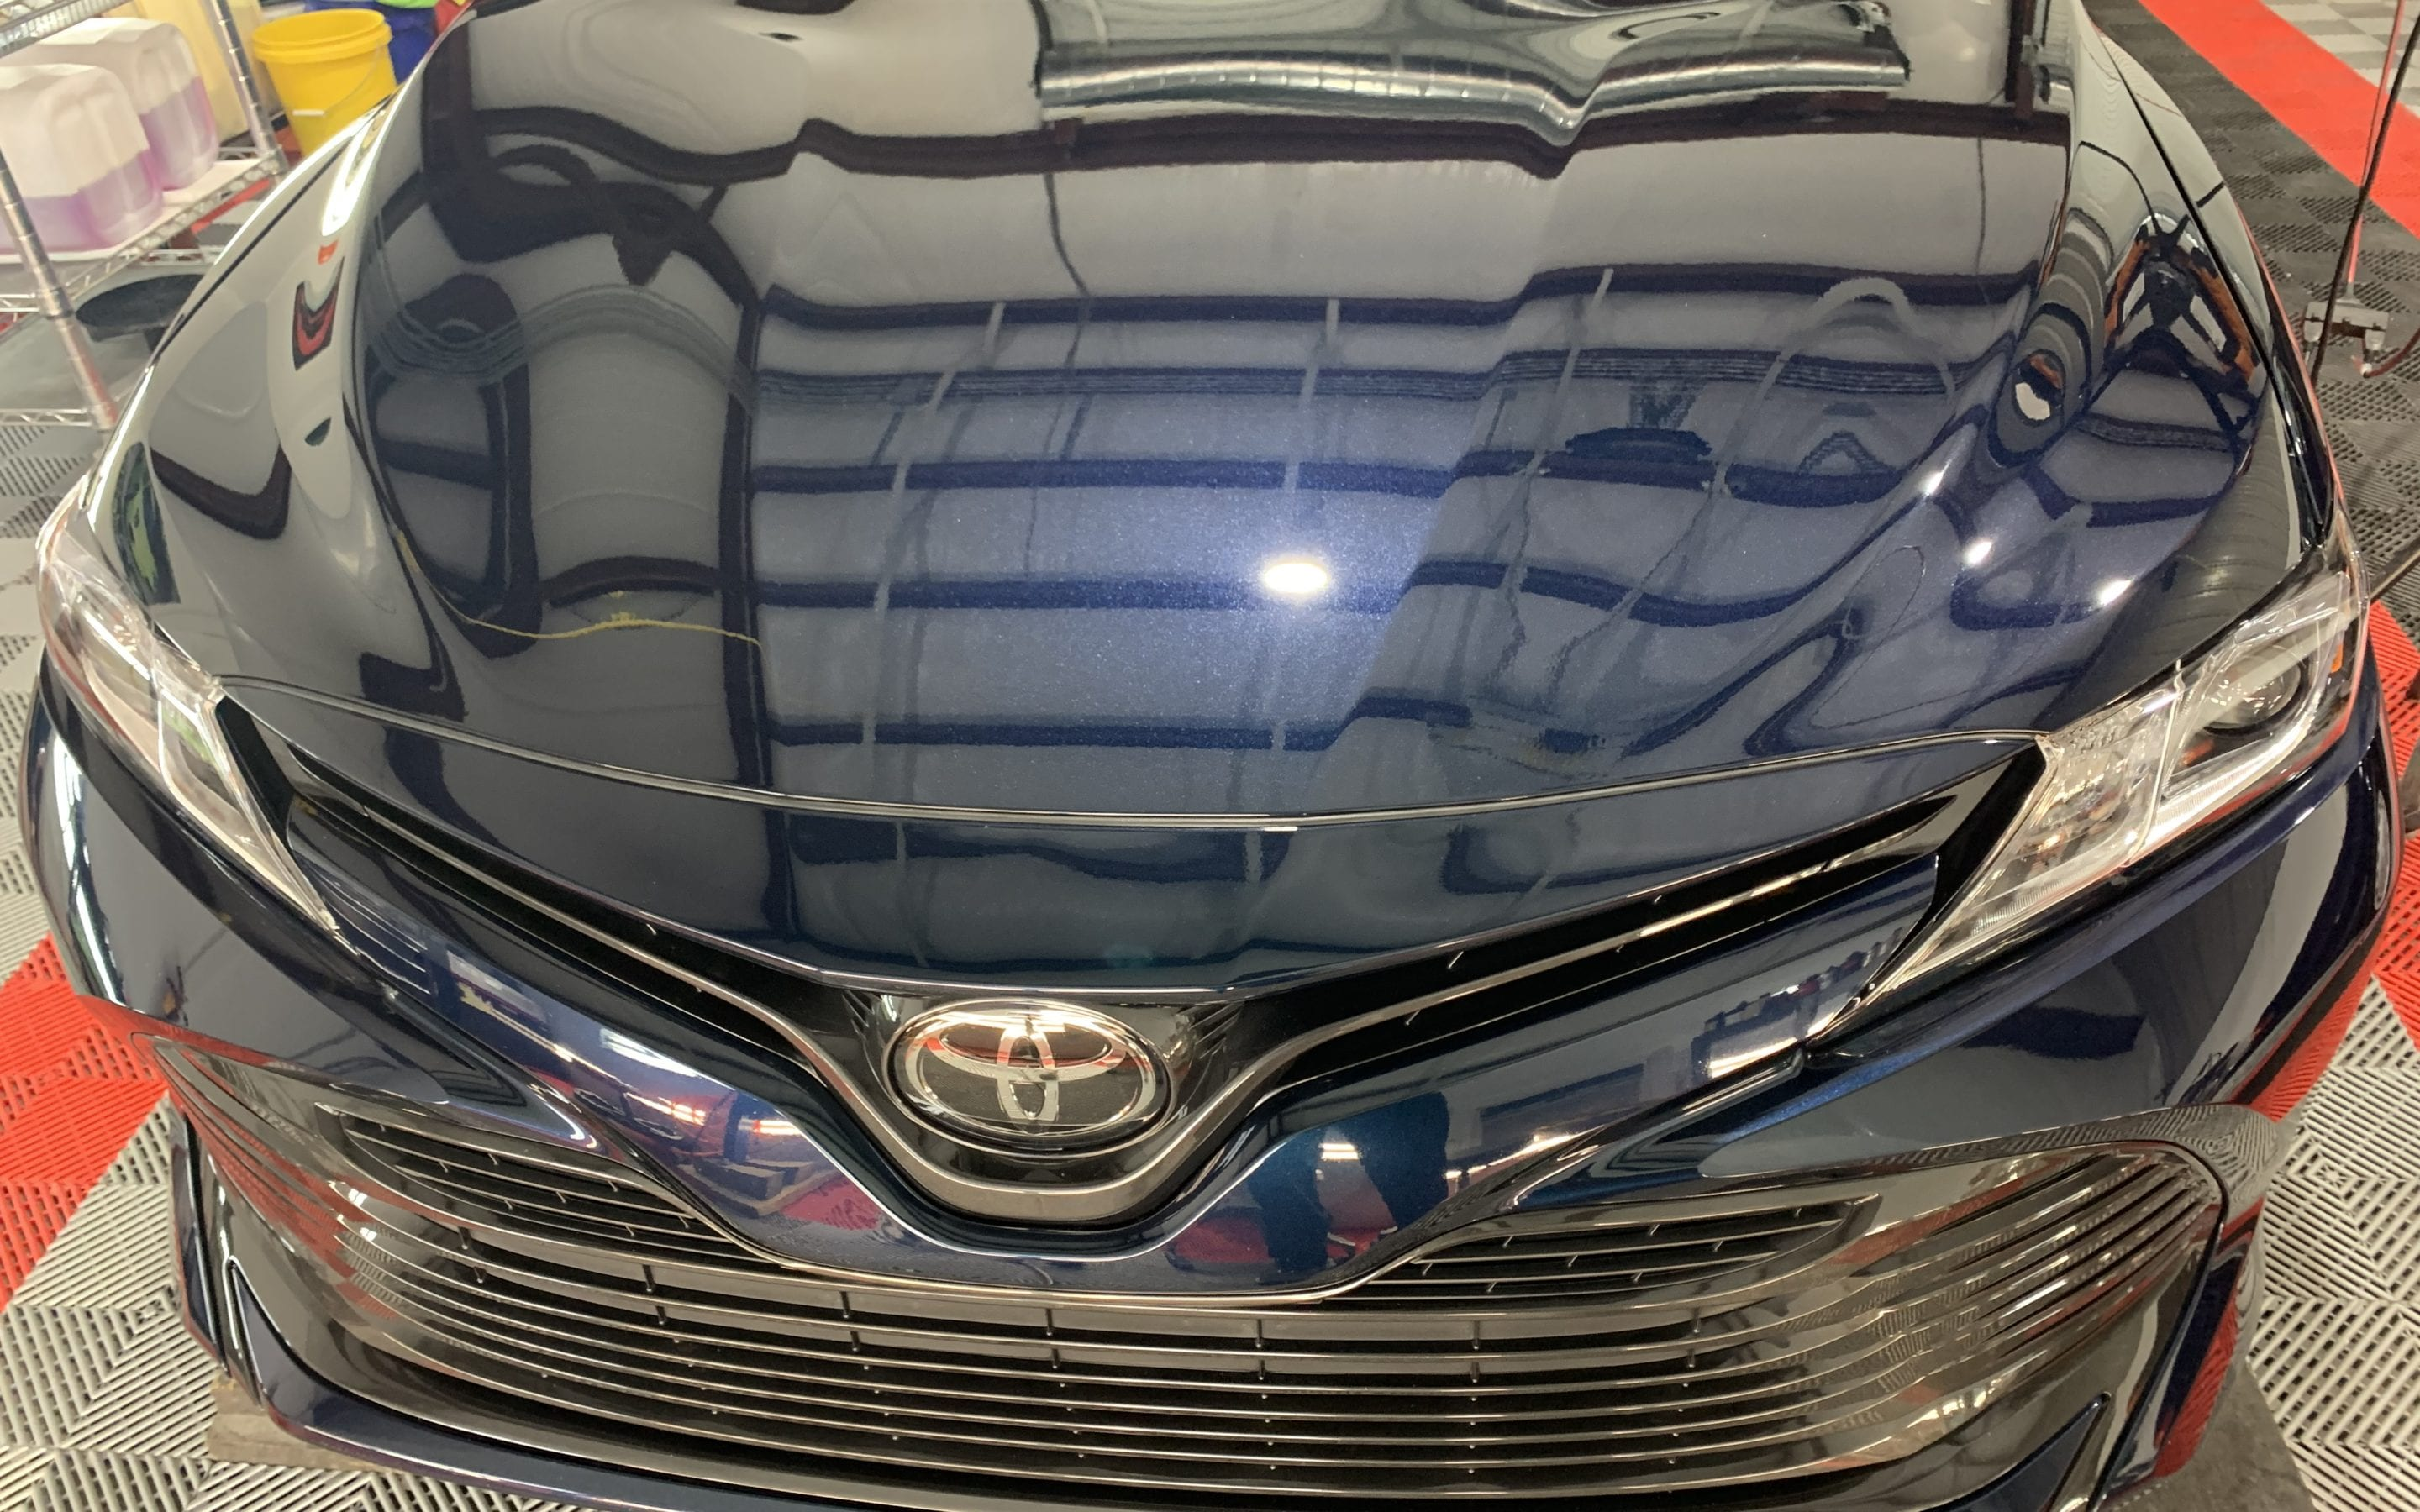 Toyota Camry Ceramic Coating by August Precision